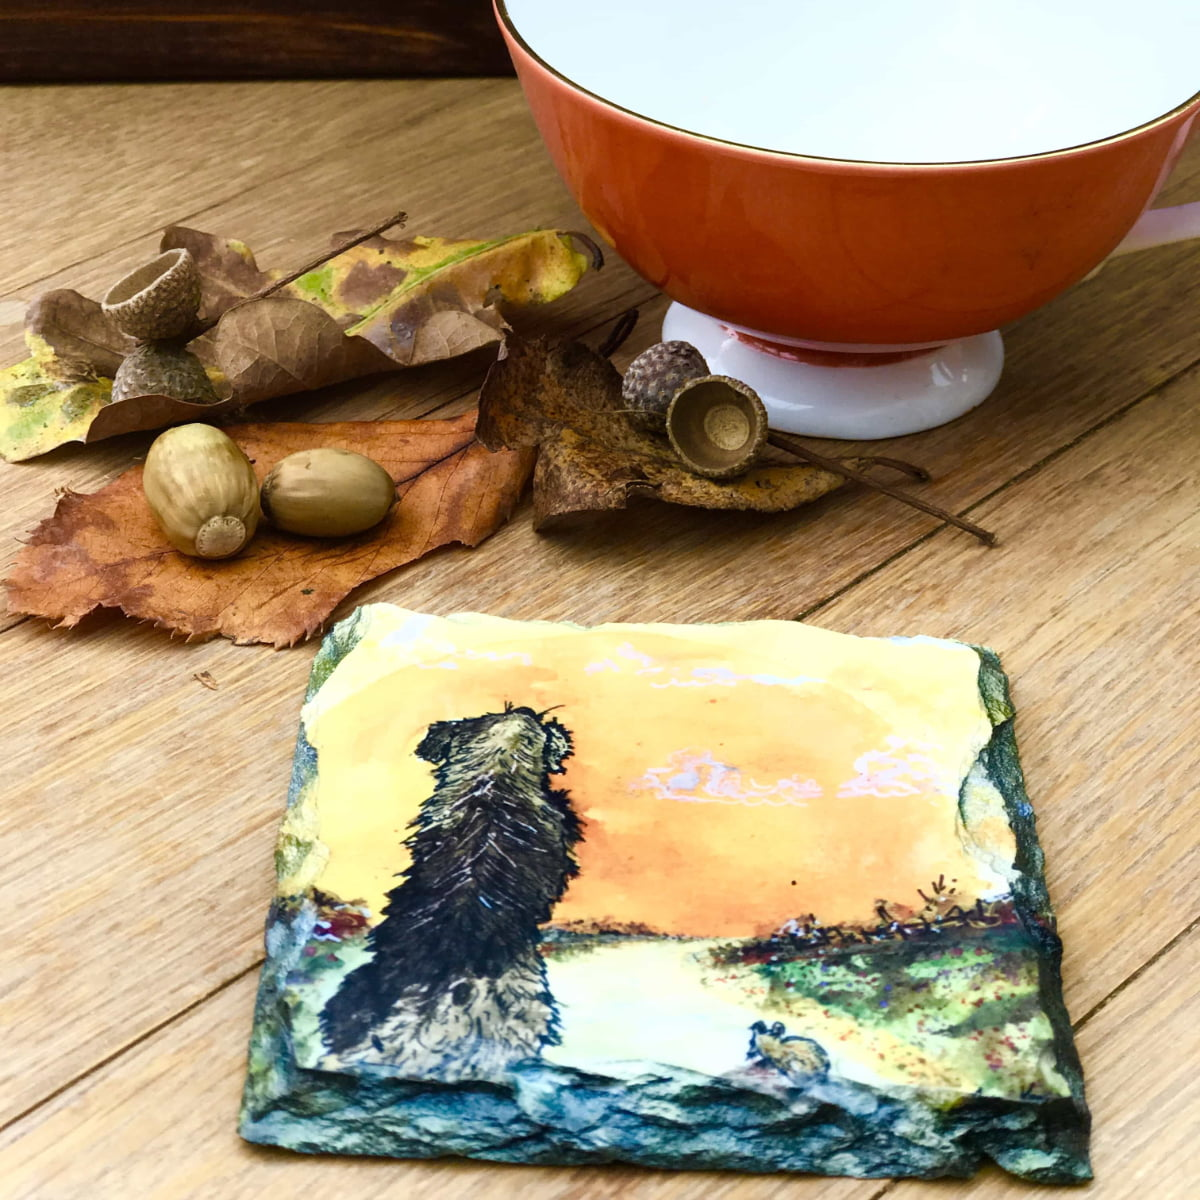 Vibrant slate coaster of dog and mouse gift by Joan kennedy